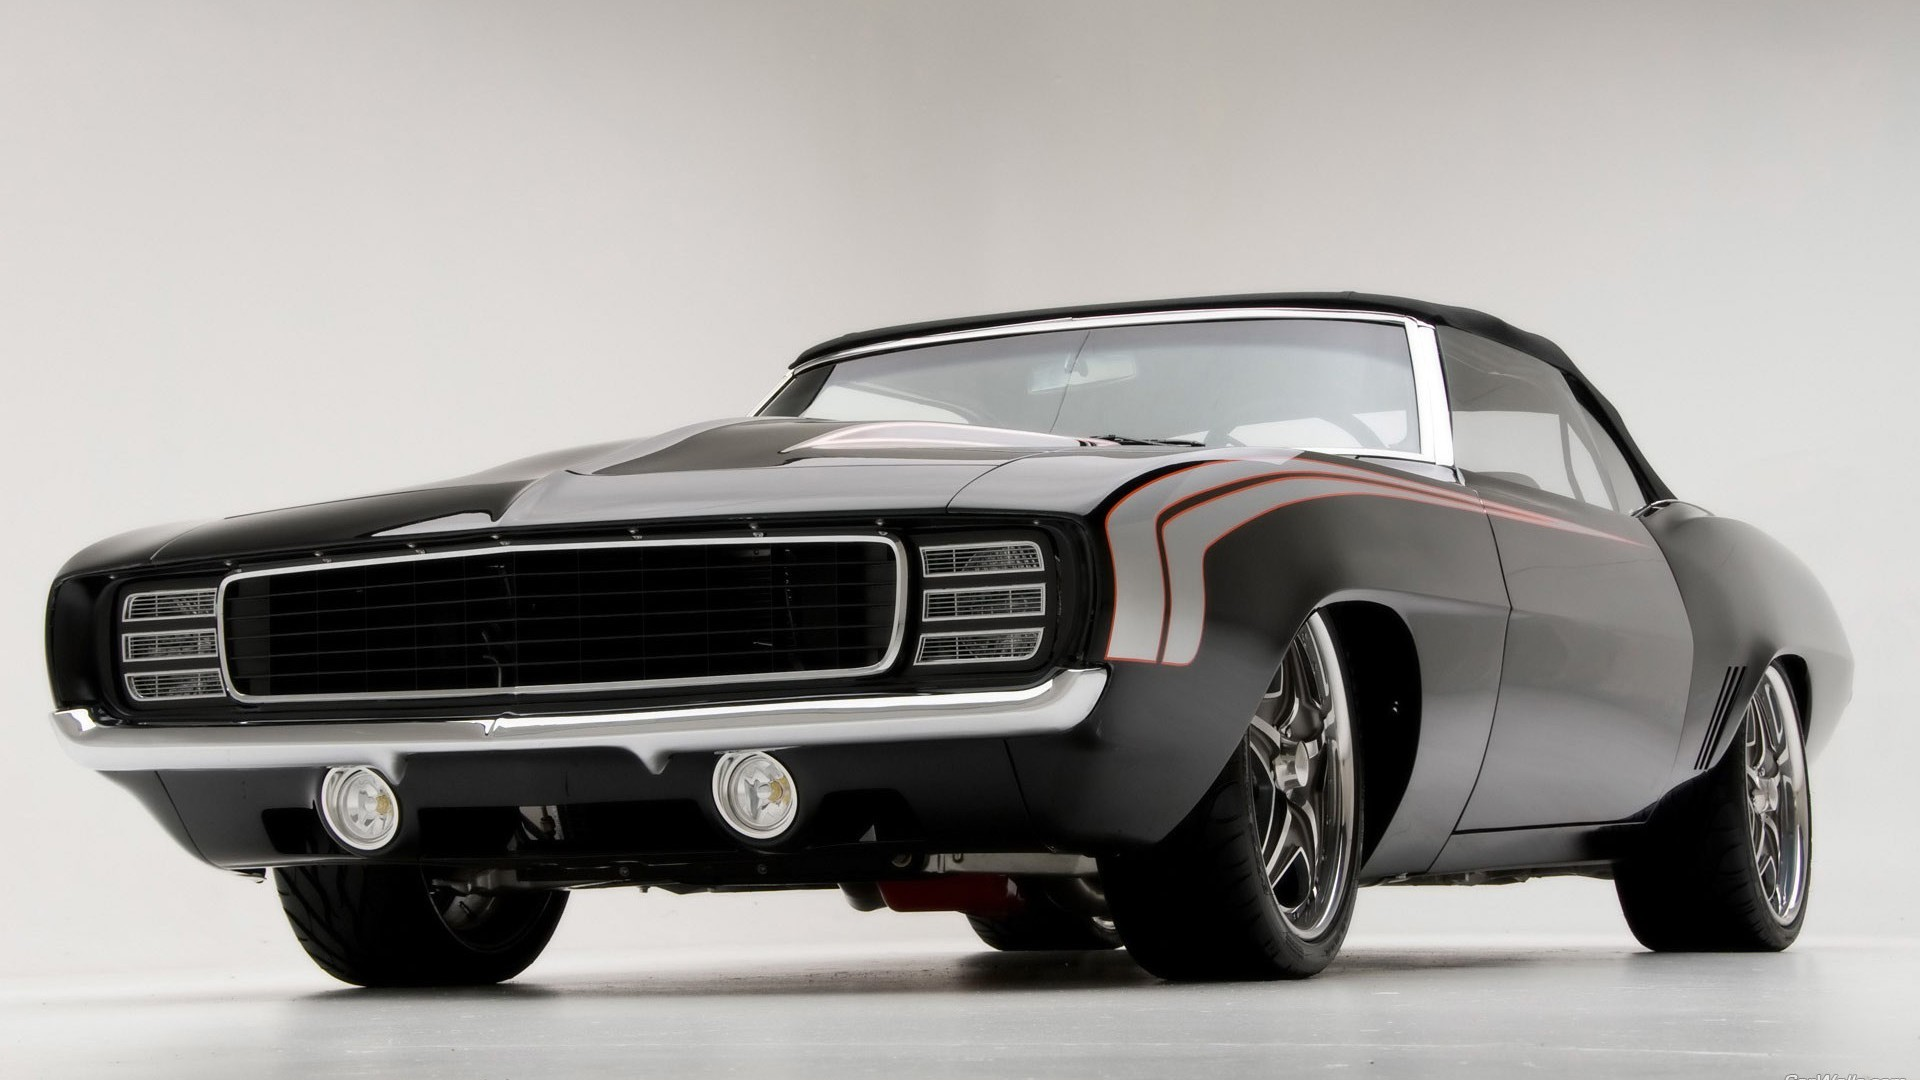 Chevy Muscle Car Wallpaper - WallpaperSafari